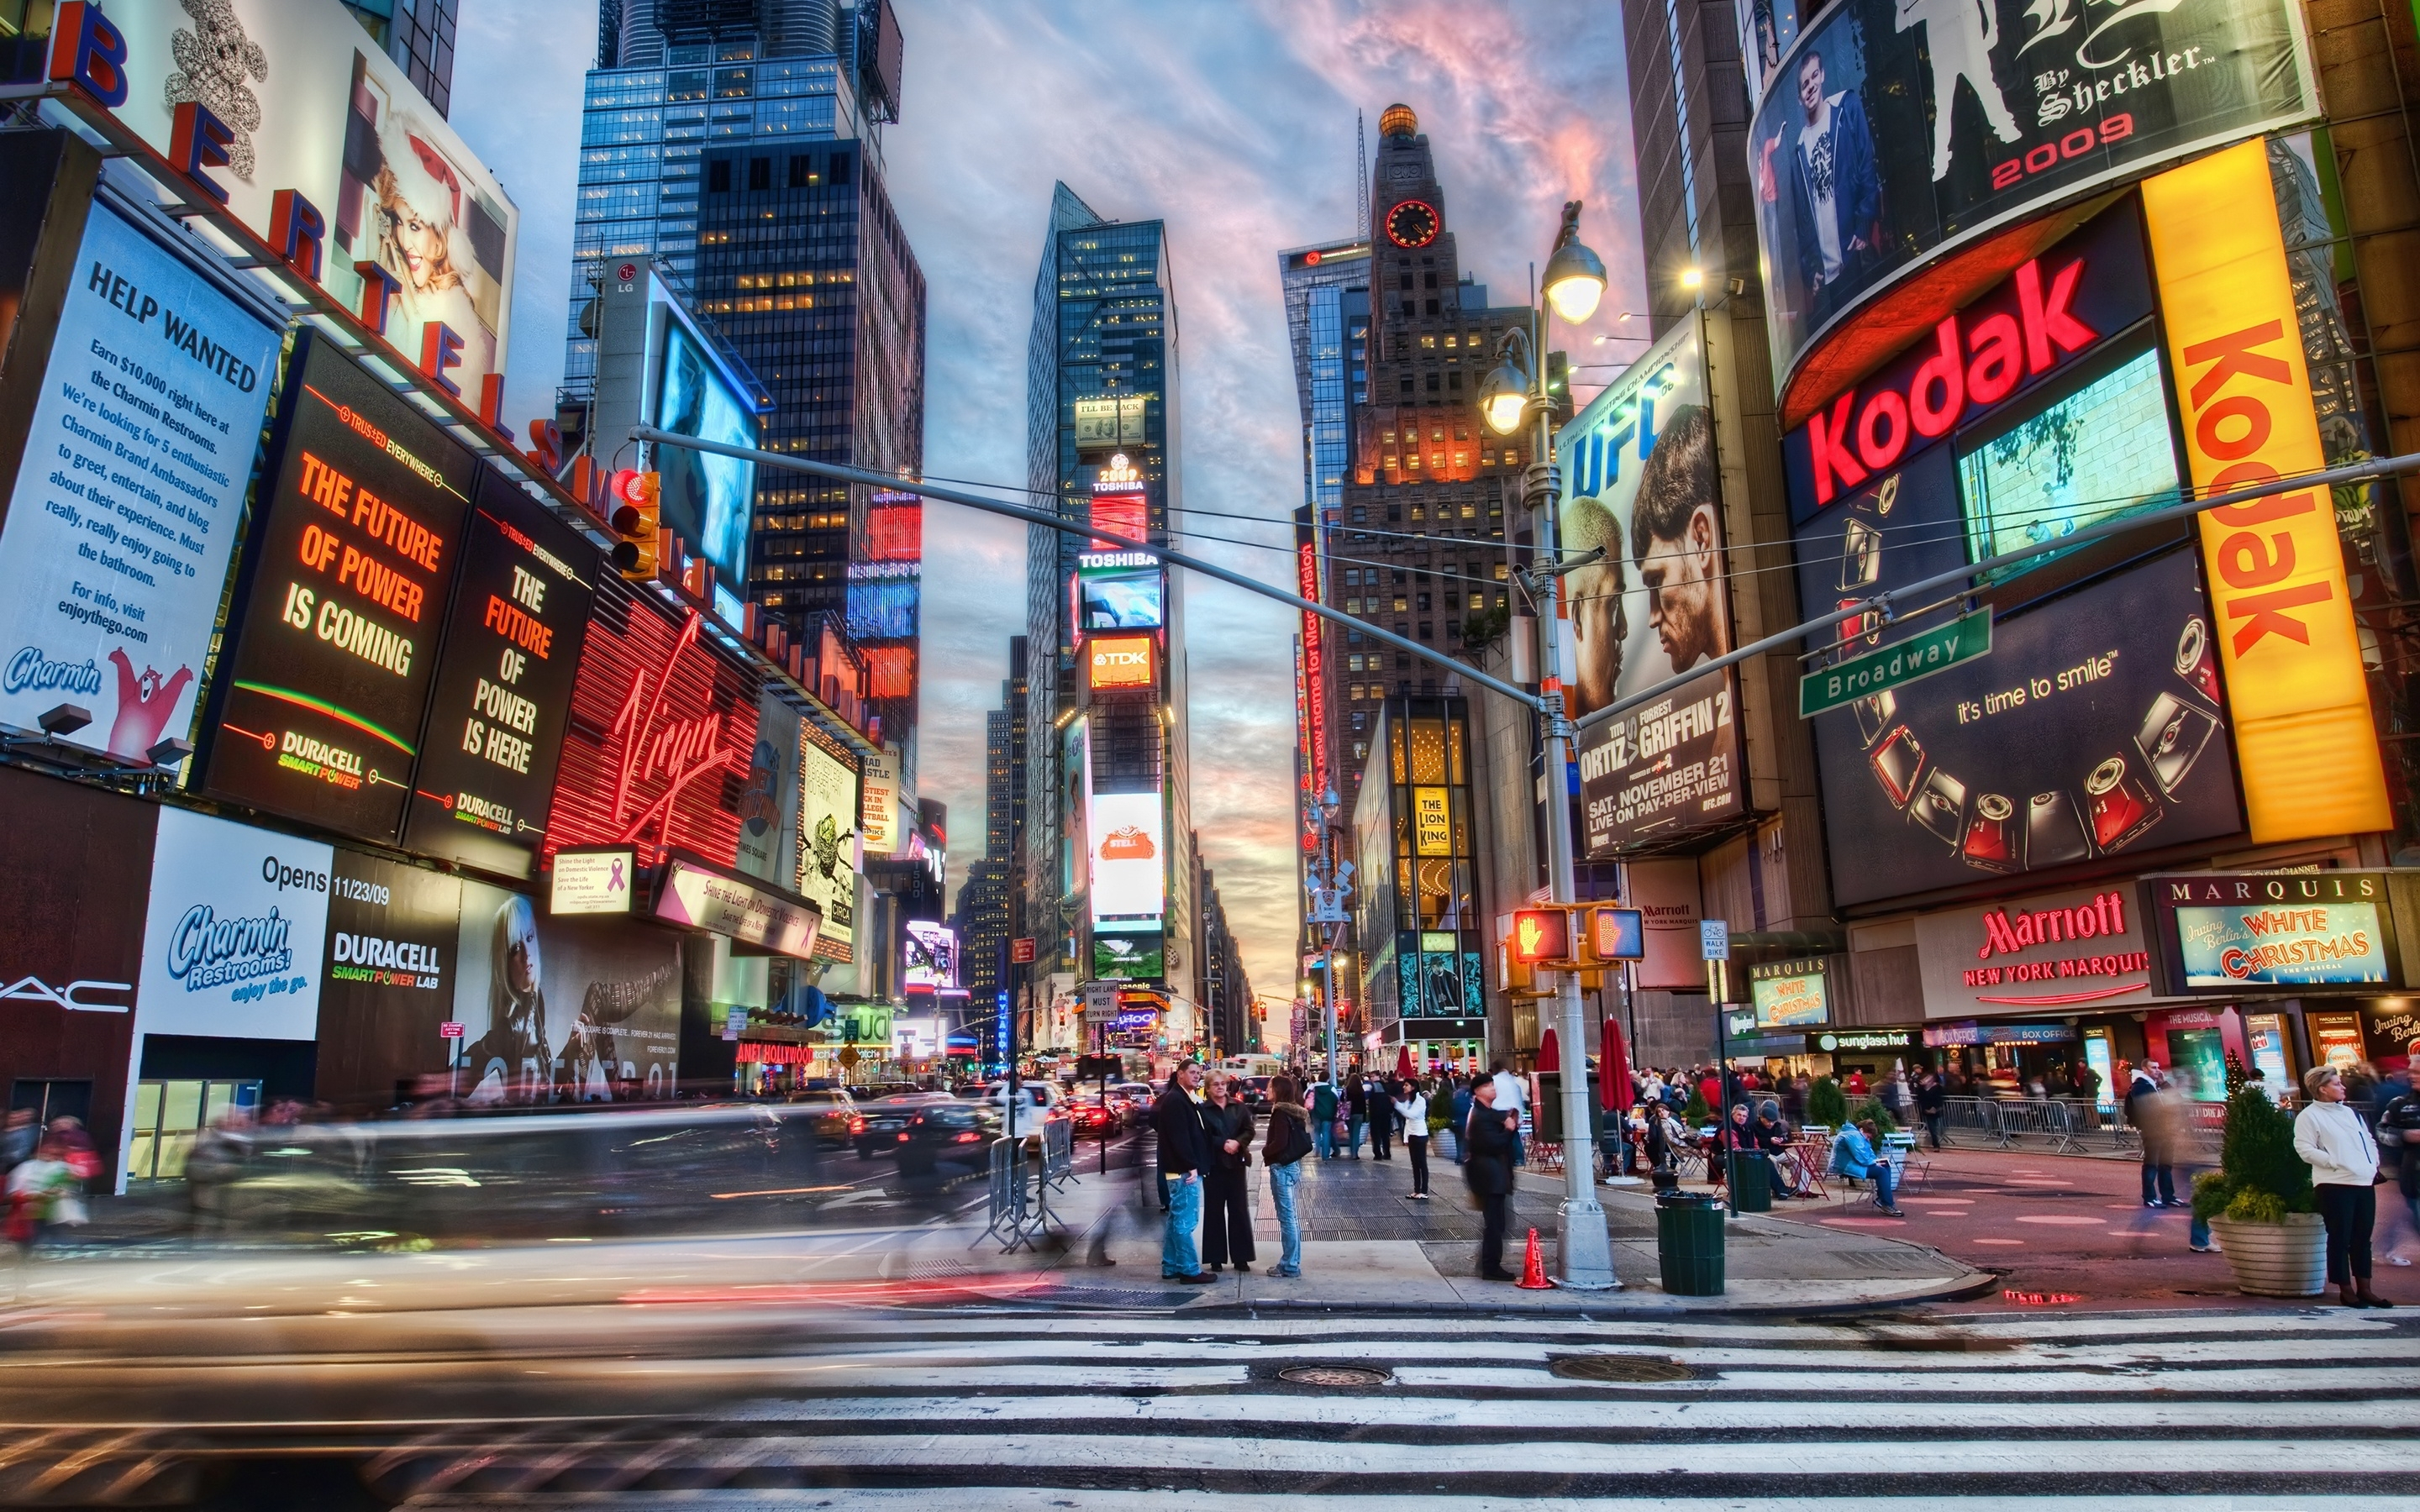 download times square widescreen wallpaper 51018 2880x1800 px high